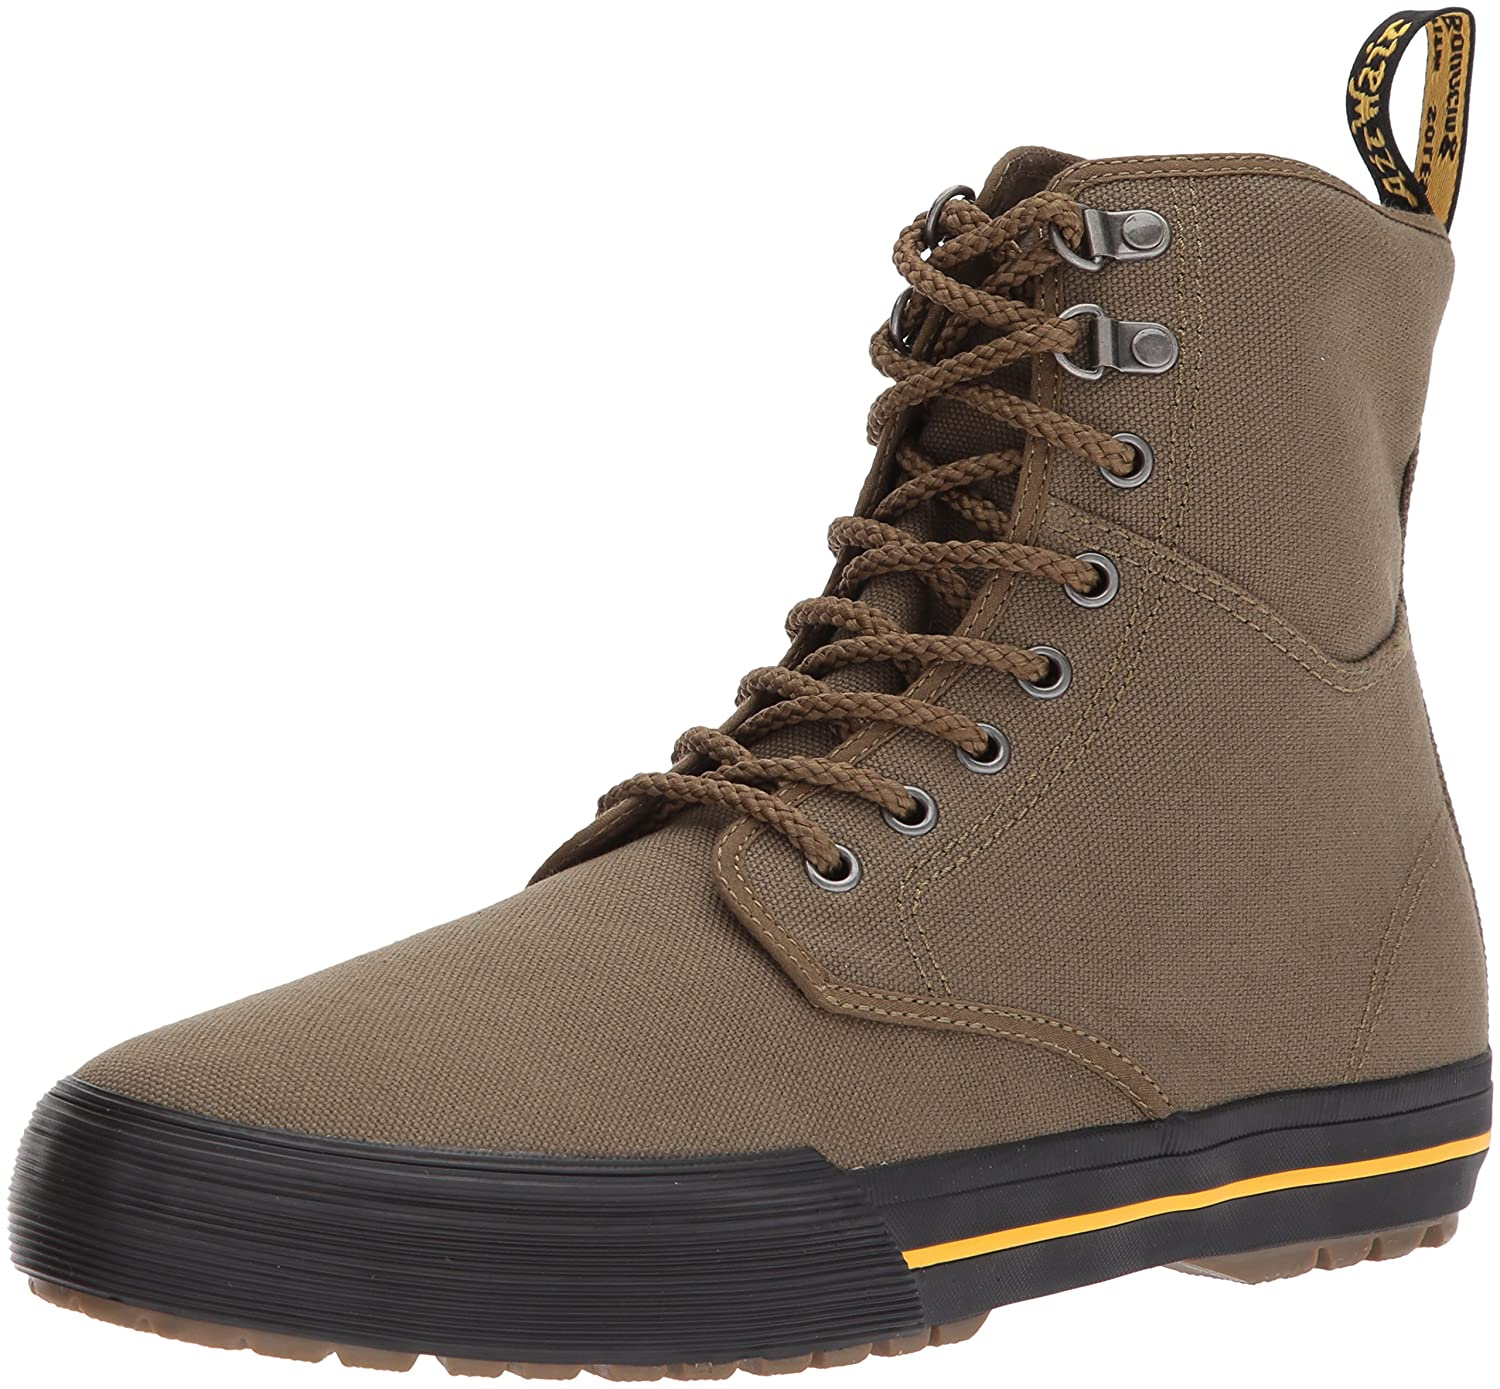 Dr. Martens Winsted Boot Mid Olive Canvas Ankle Boot Winsted B01N0W11T0 12 Medium UK (US Men's 13 US)|Olive be7f30